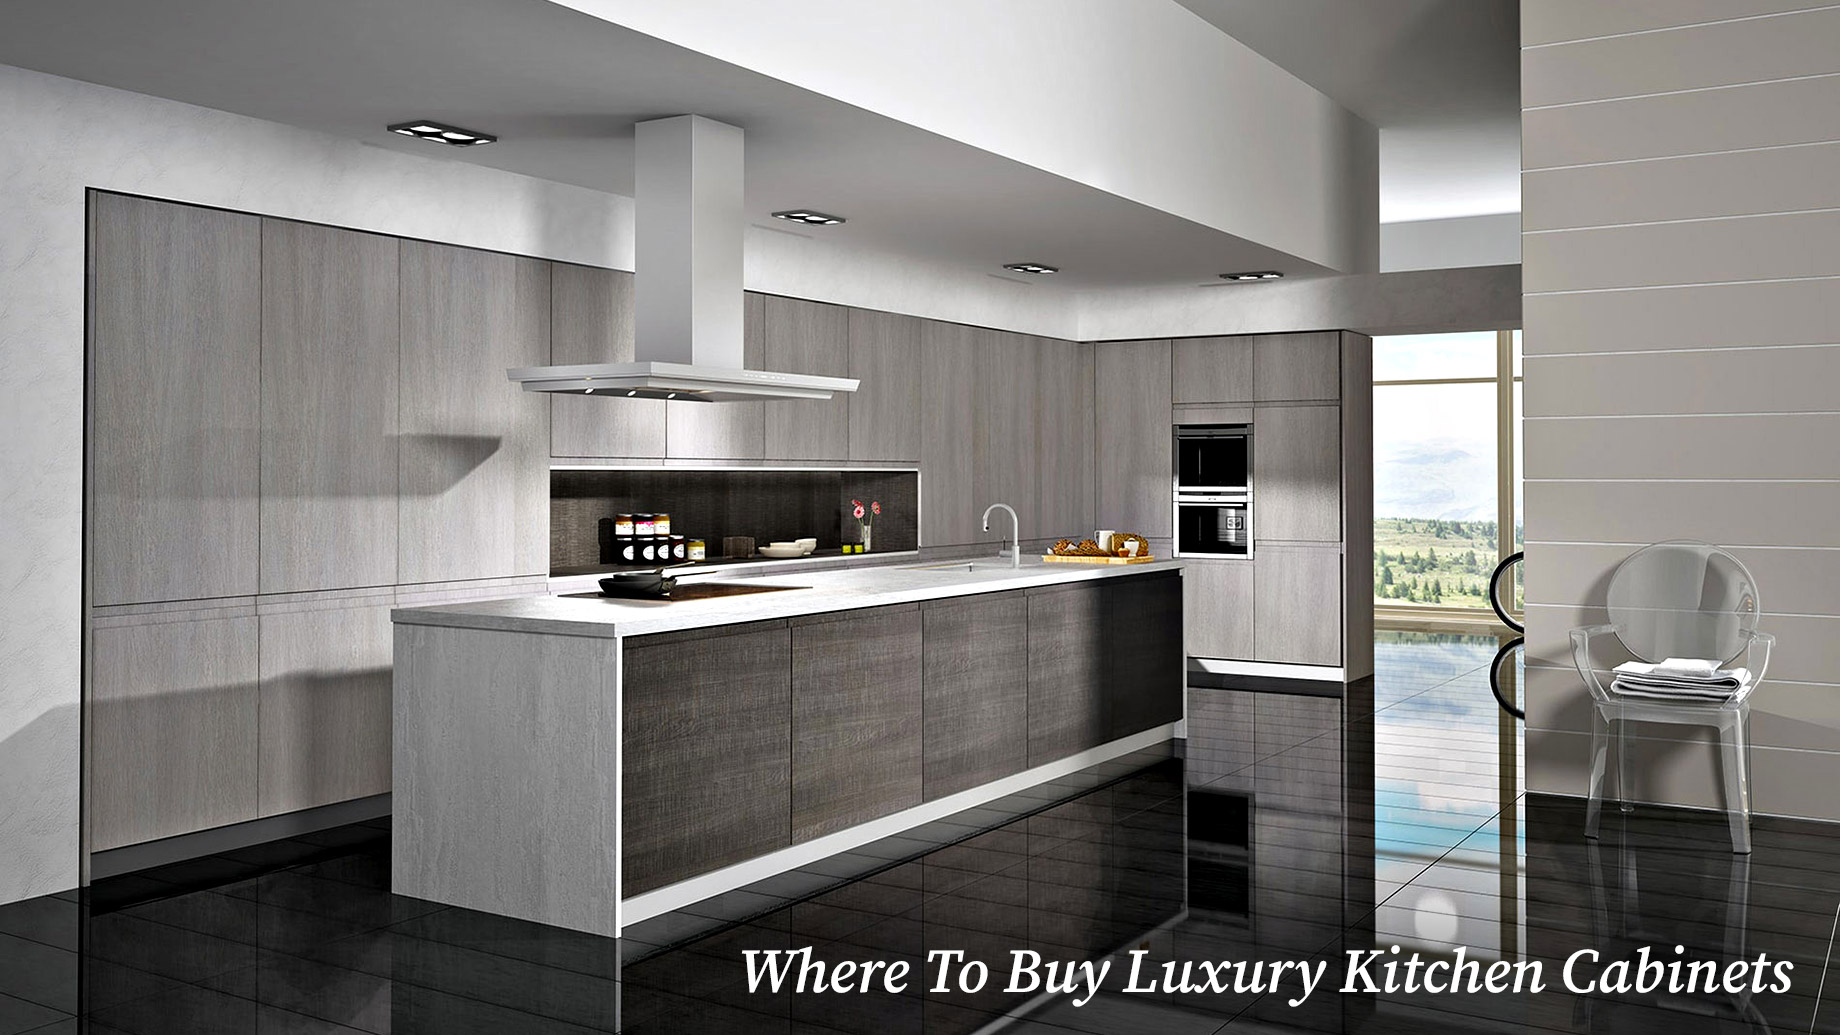 Where To Buy Luxury Kitchen Cabinets